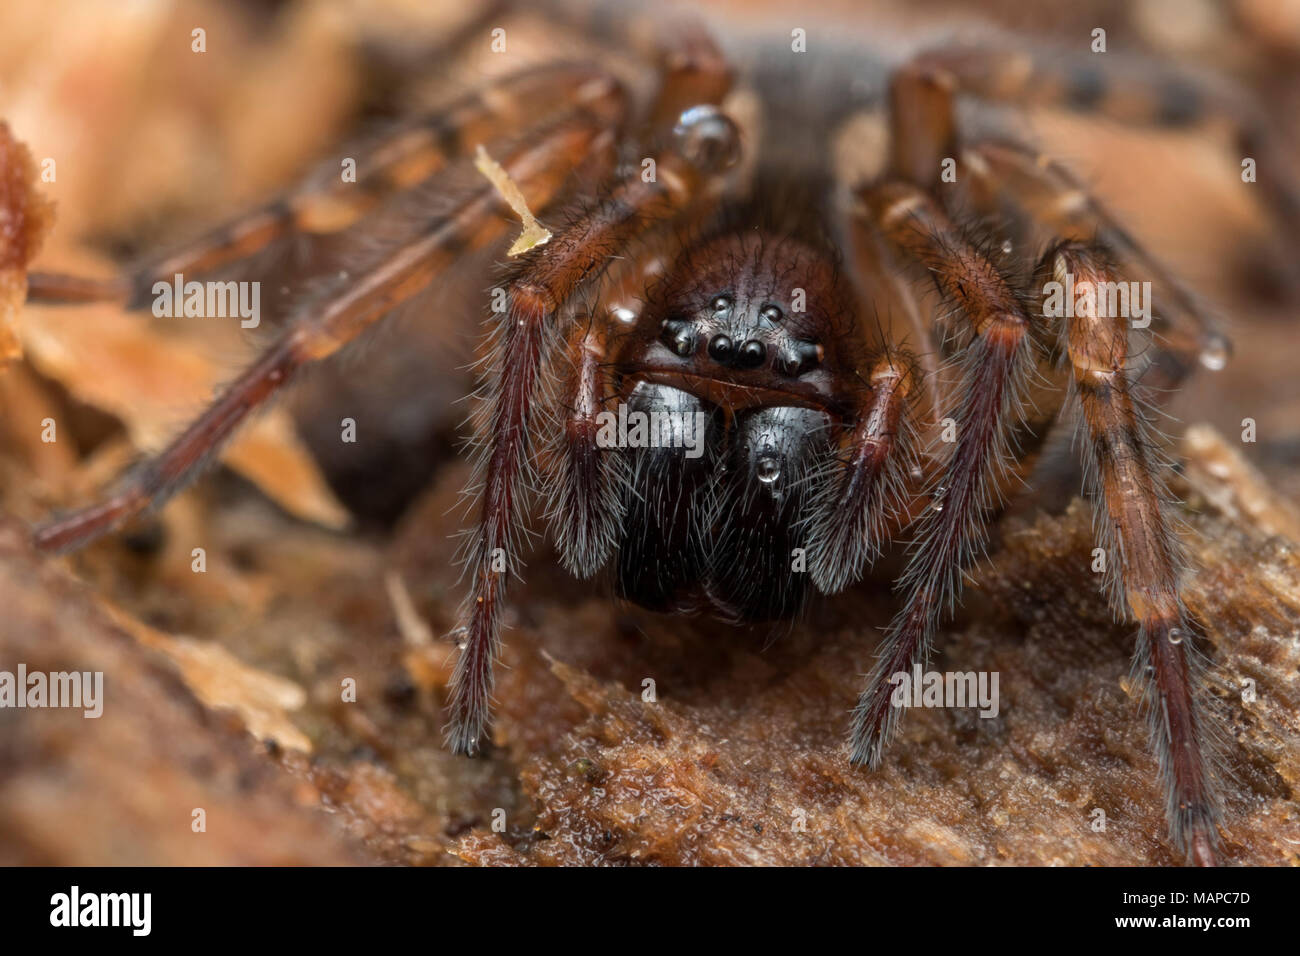 Lace-weaver Spider (Amaurobius sp.) at rest on rotten tree trunk. Tipperary, Ireland - Stock Image